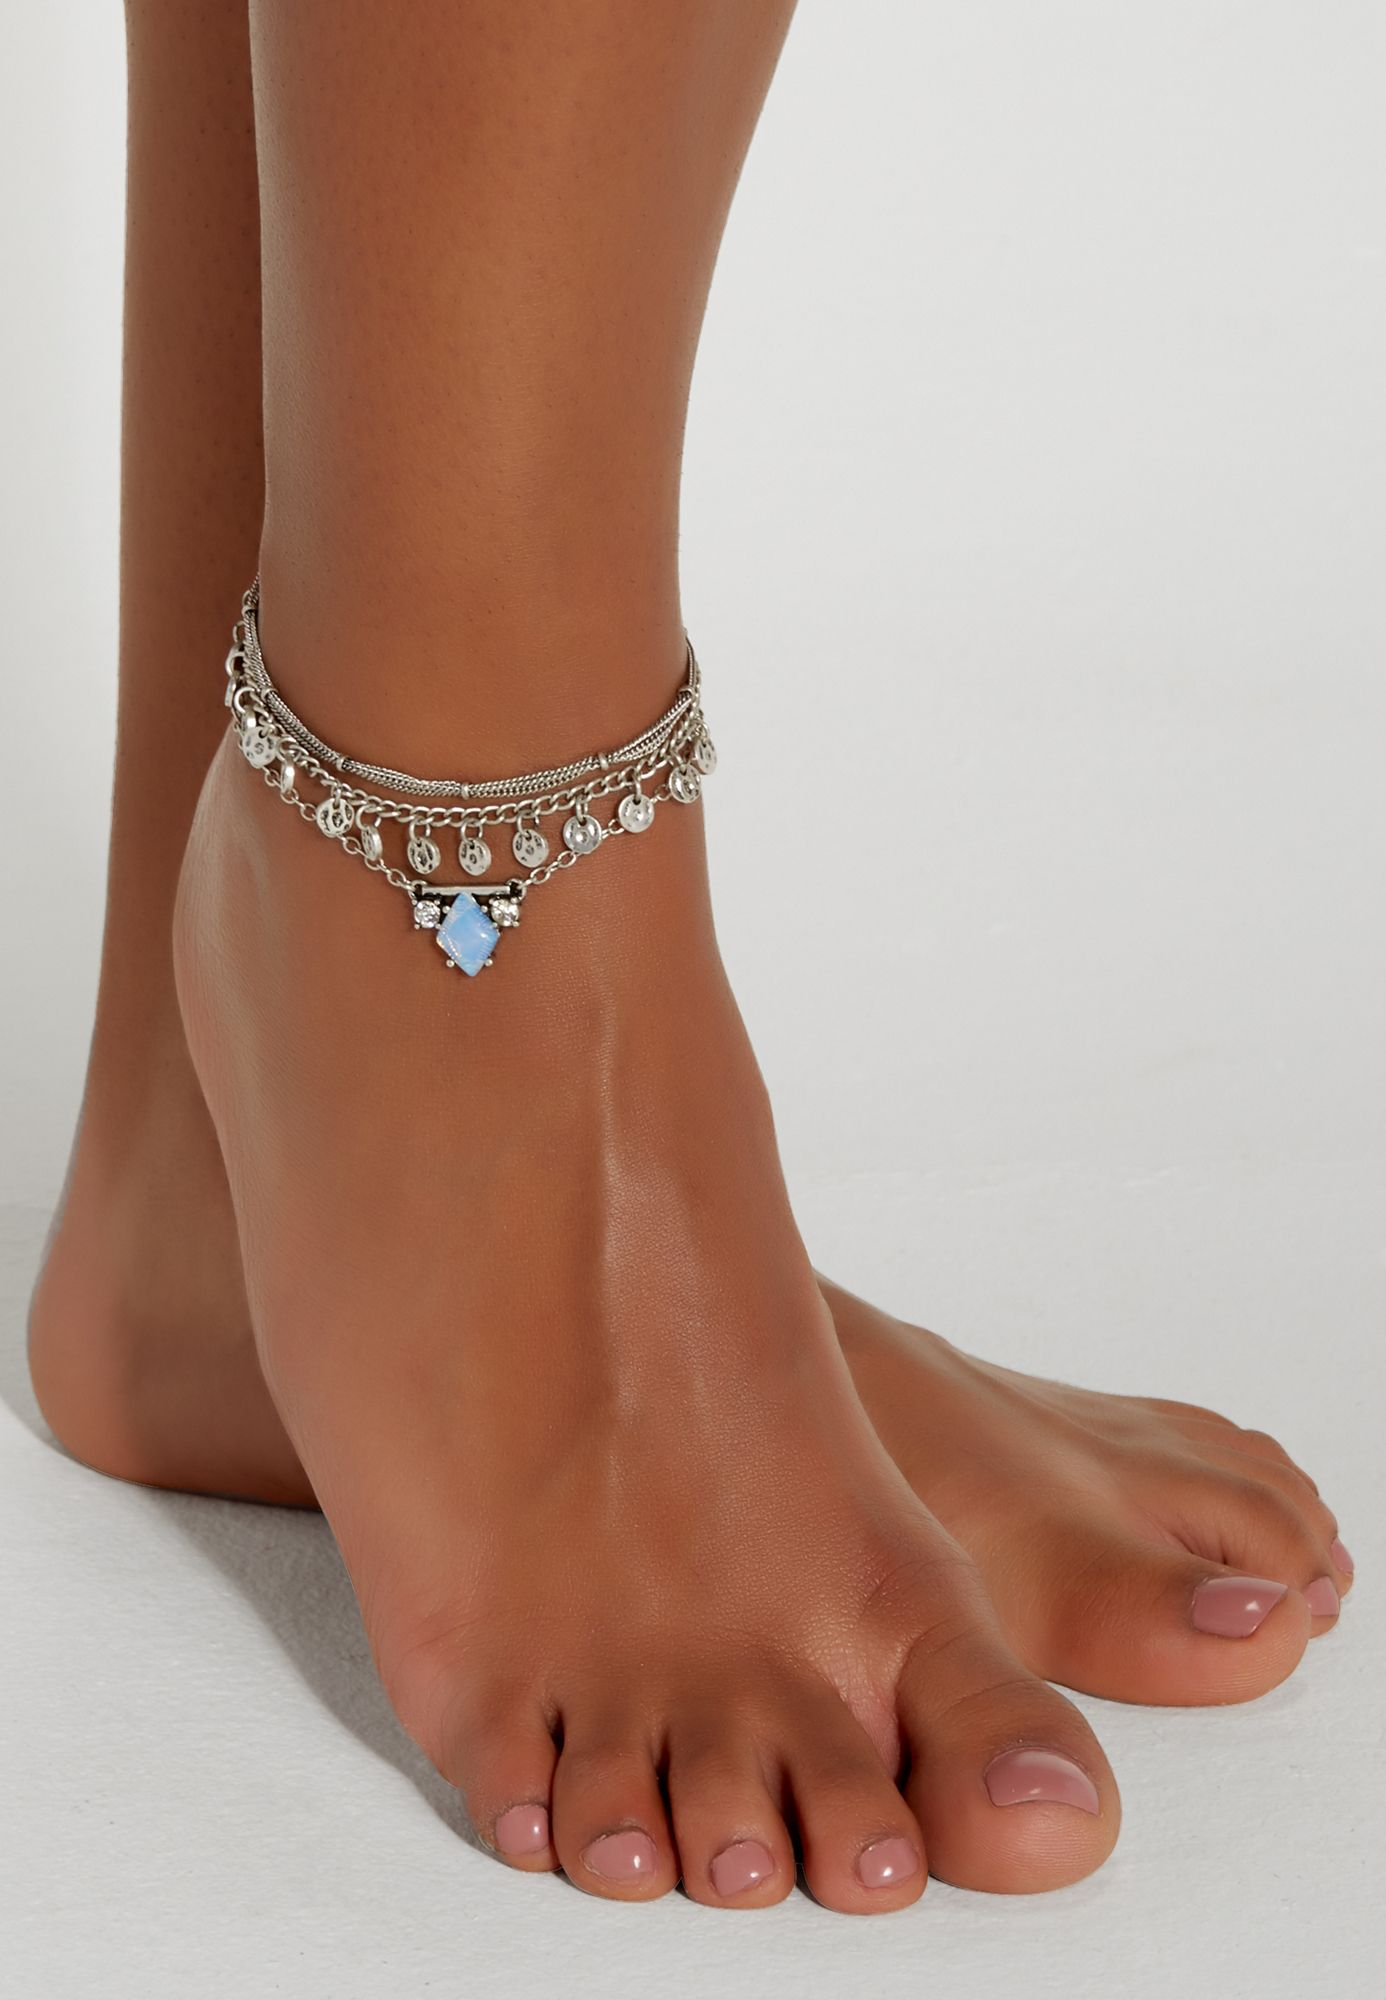 elephant anklet original ganesh products bracelets i bracelet where buy jew friend lucky can jewelry ankle best